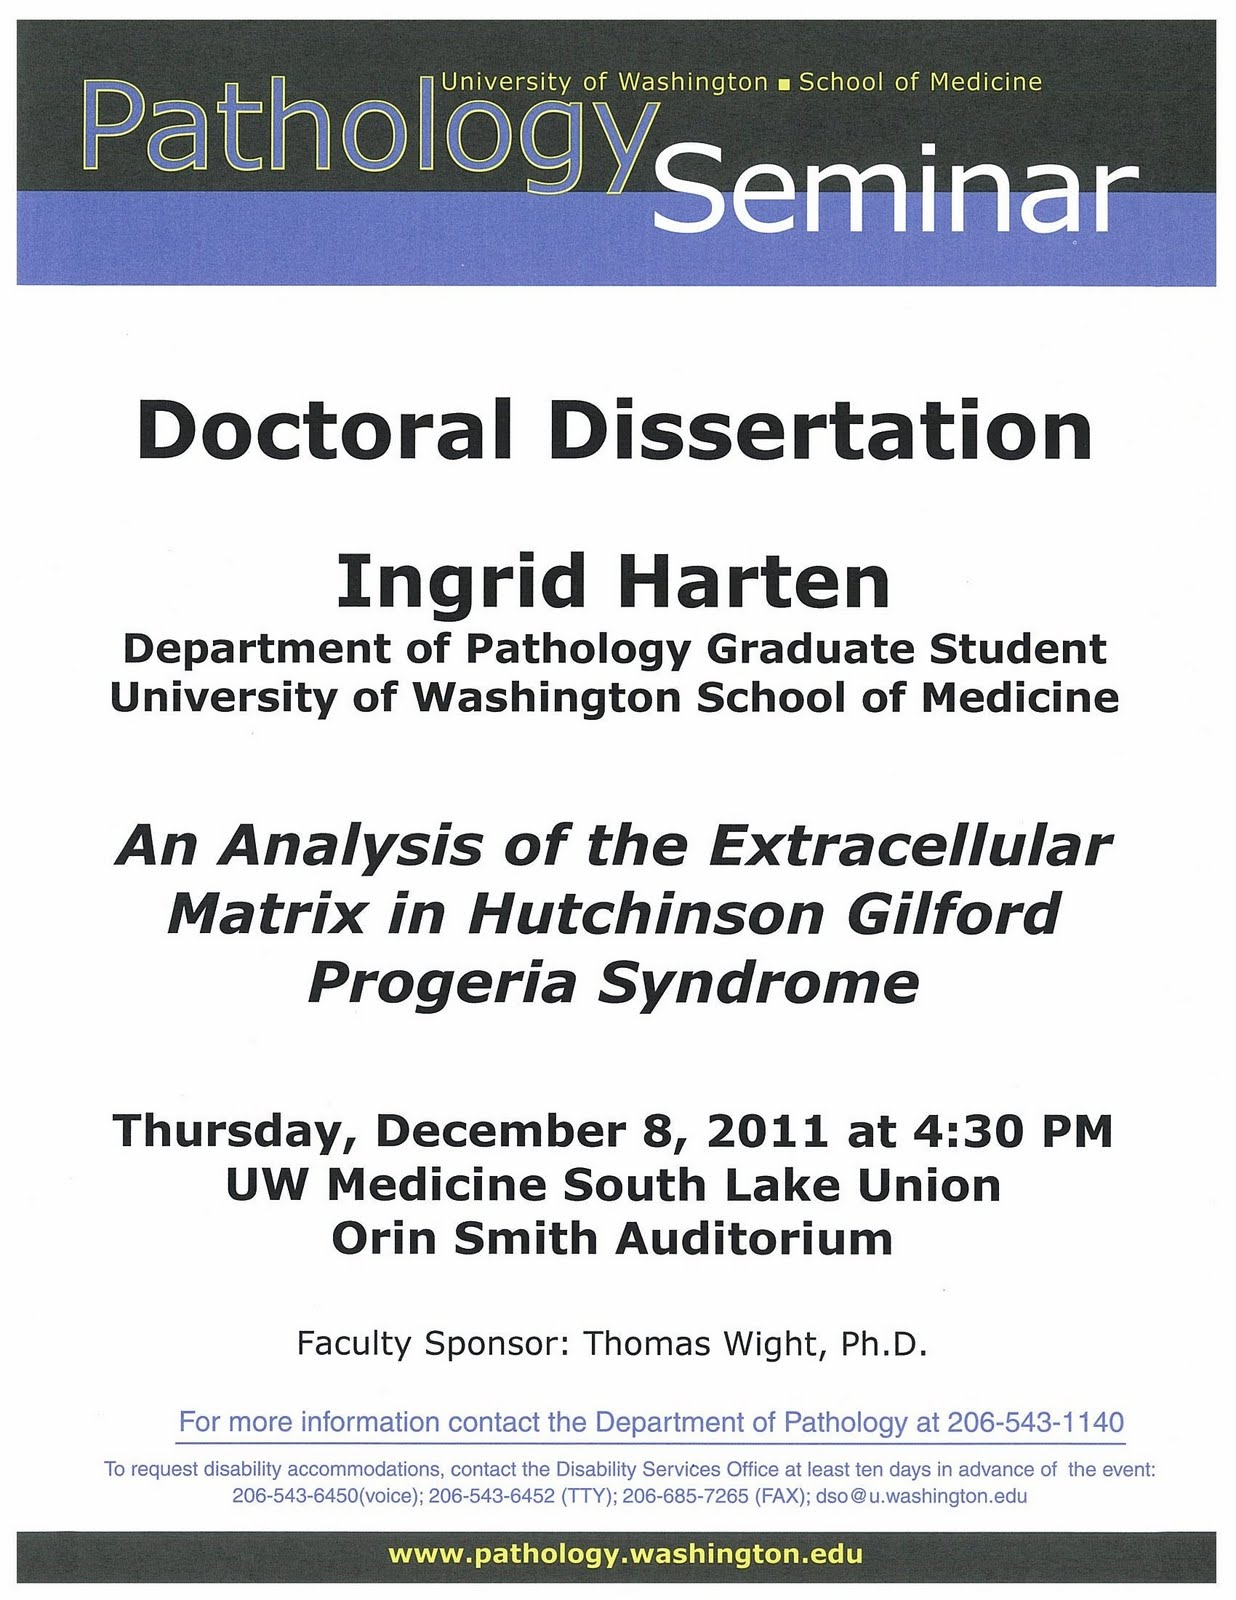 Doctorial thesis on